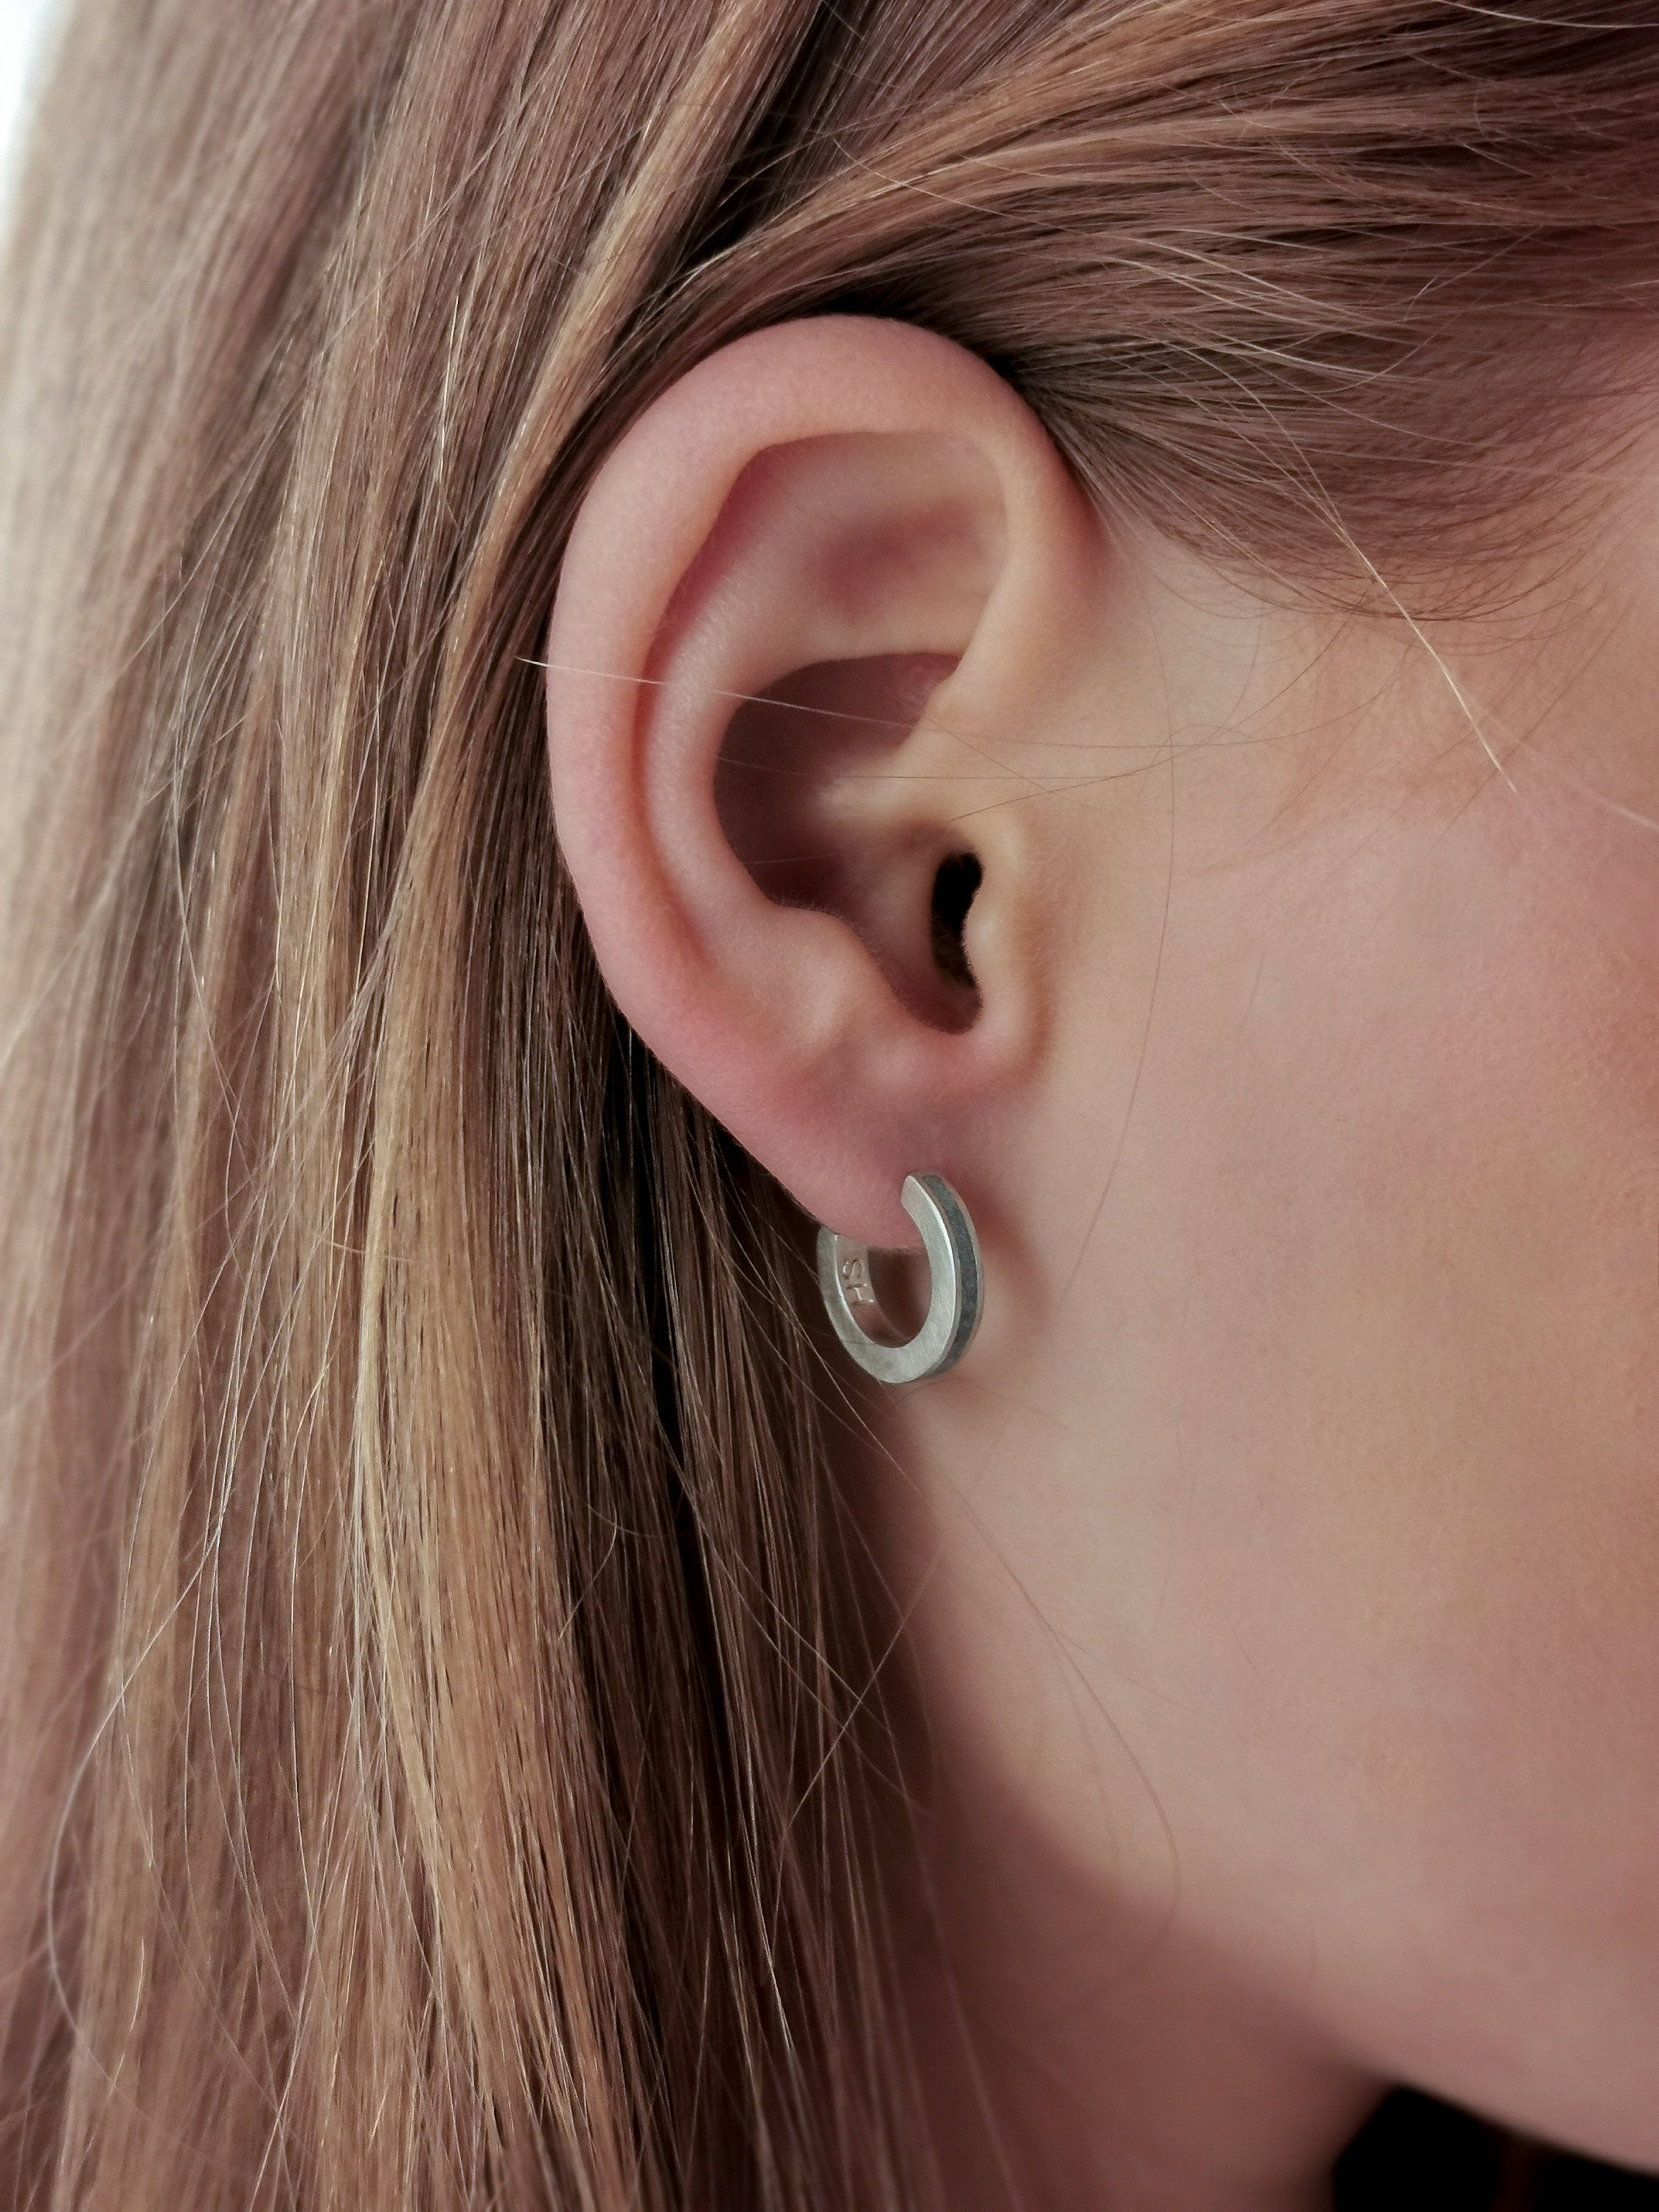 Contemporary Minimalist Silver & Concrete Small Hoop Earrings - hs